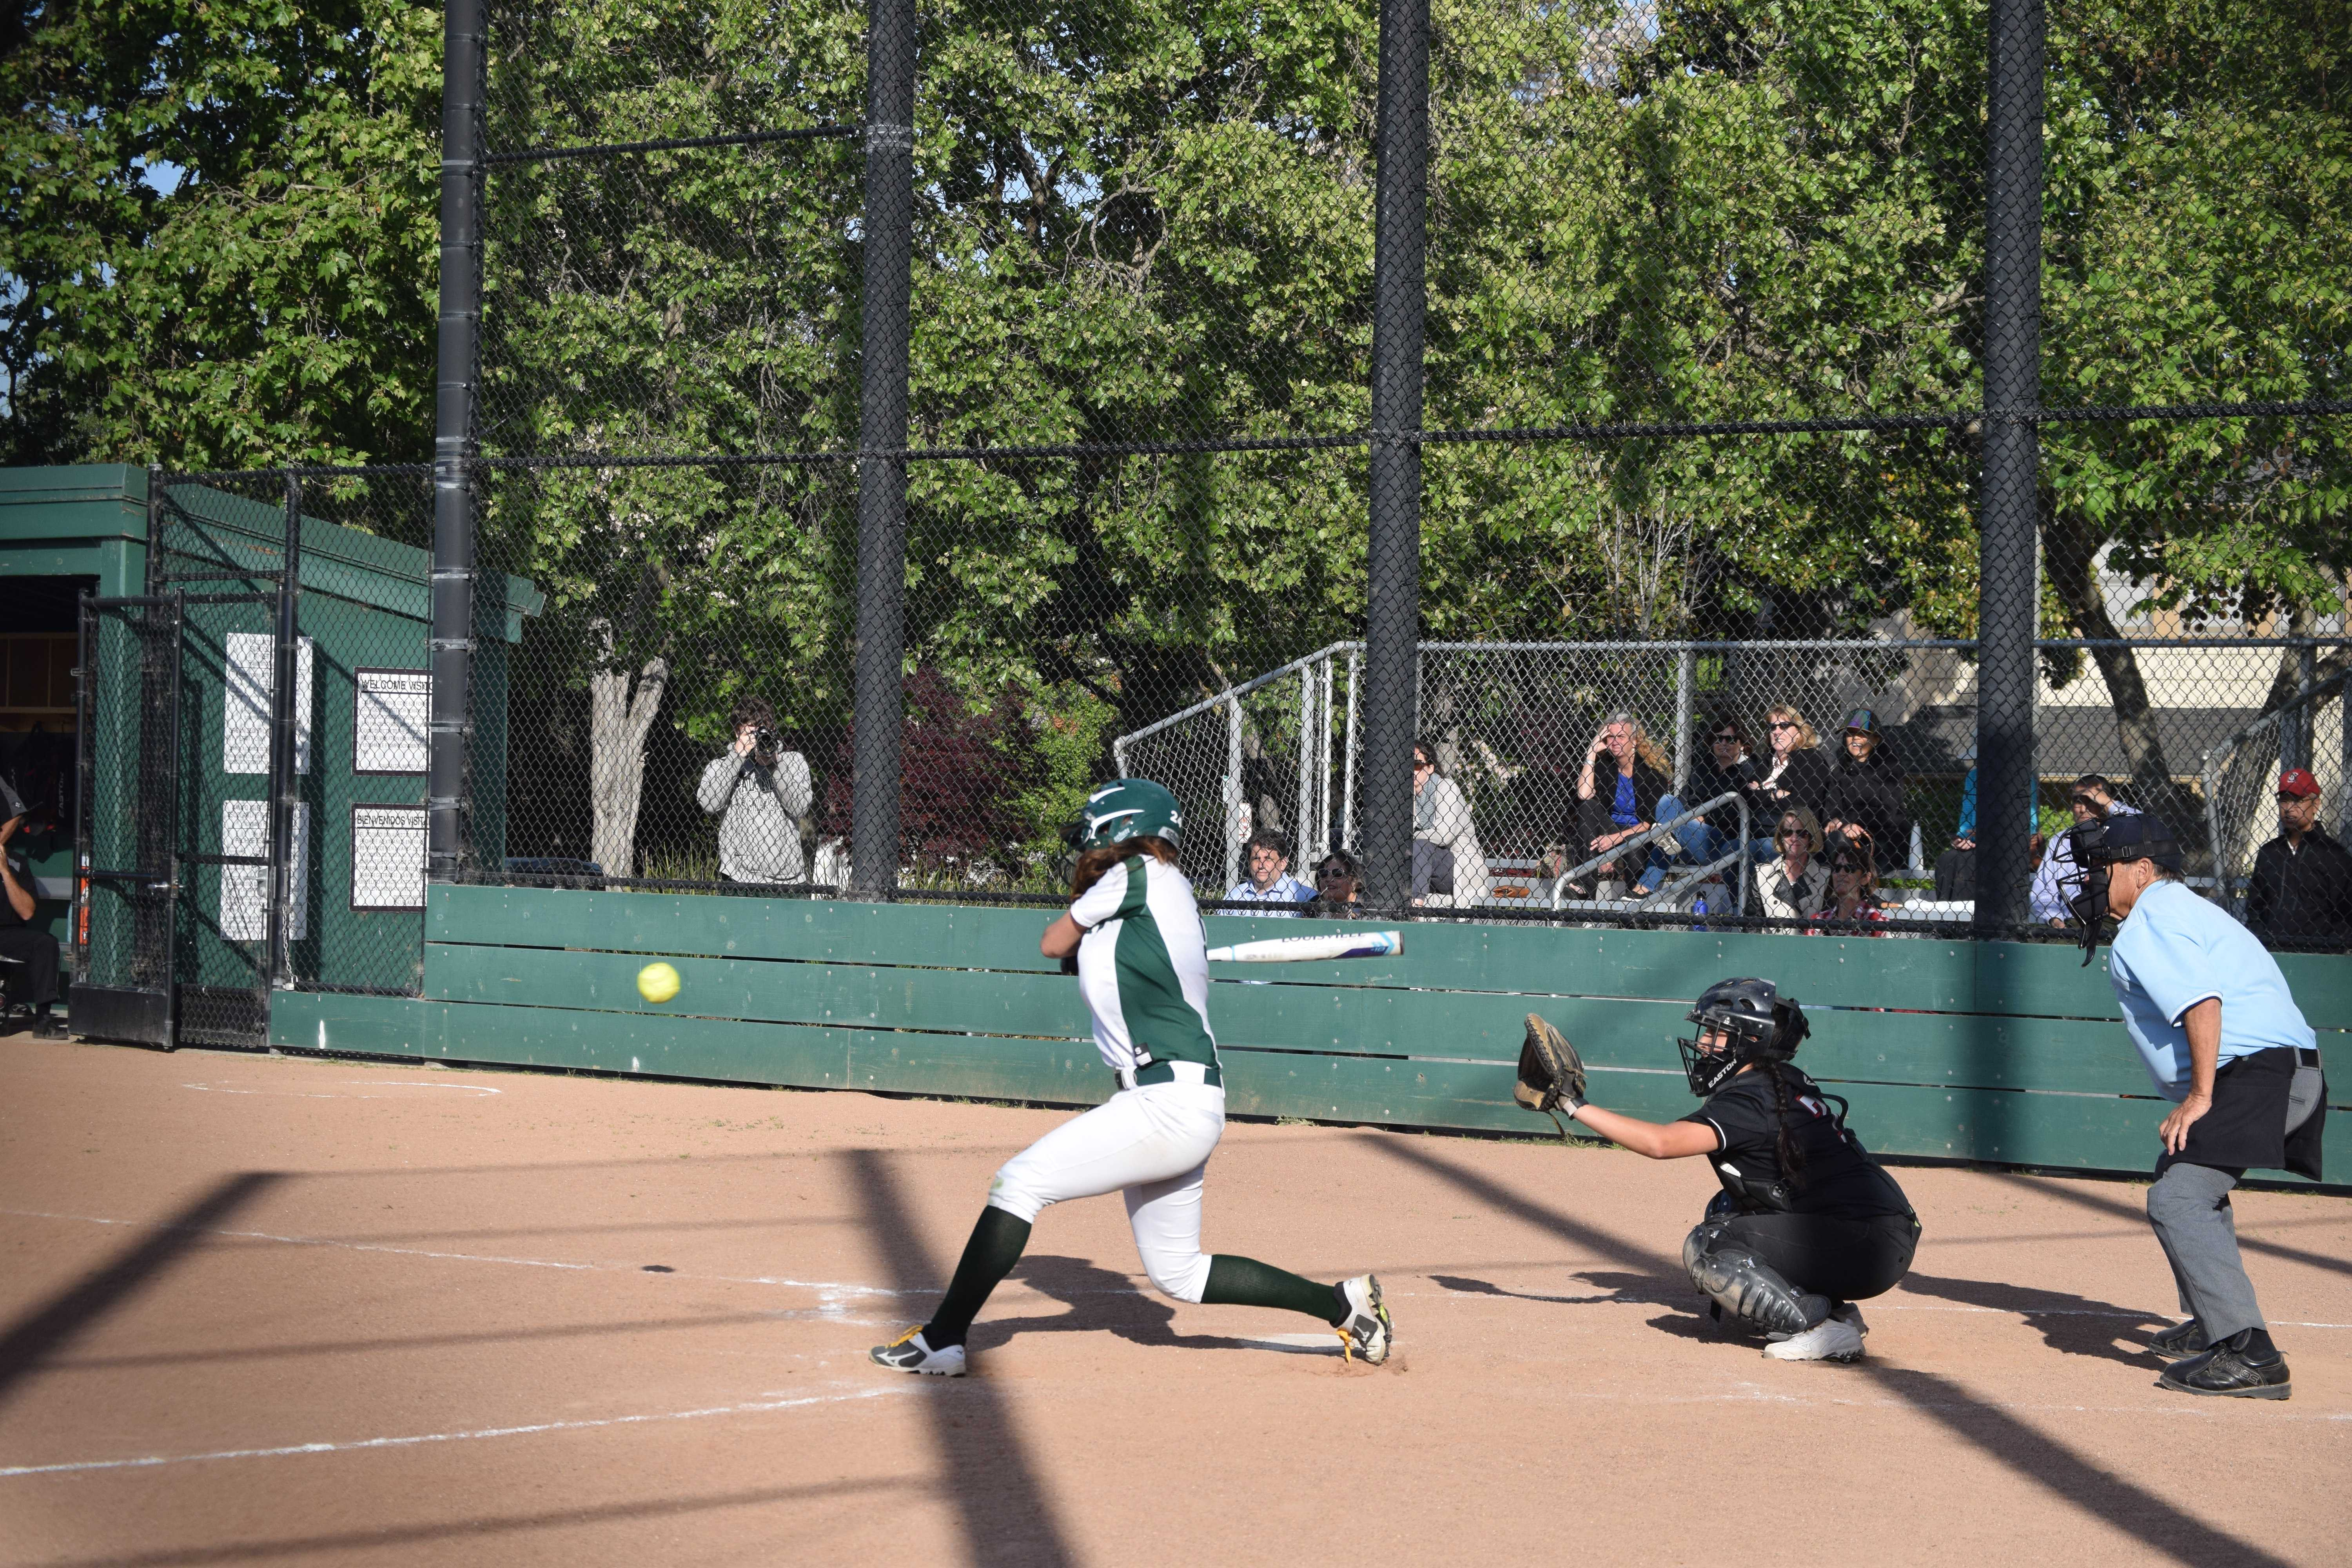 Sophomore Zoe Silver swings at the ball in the first inning in a matchup against Gunn High School.